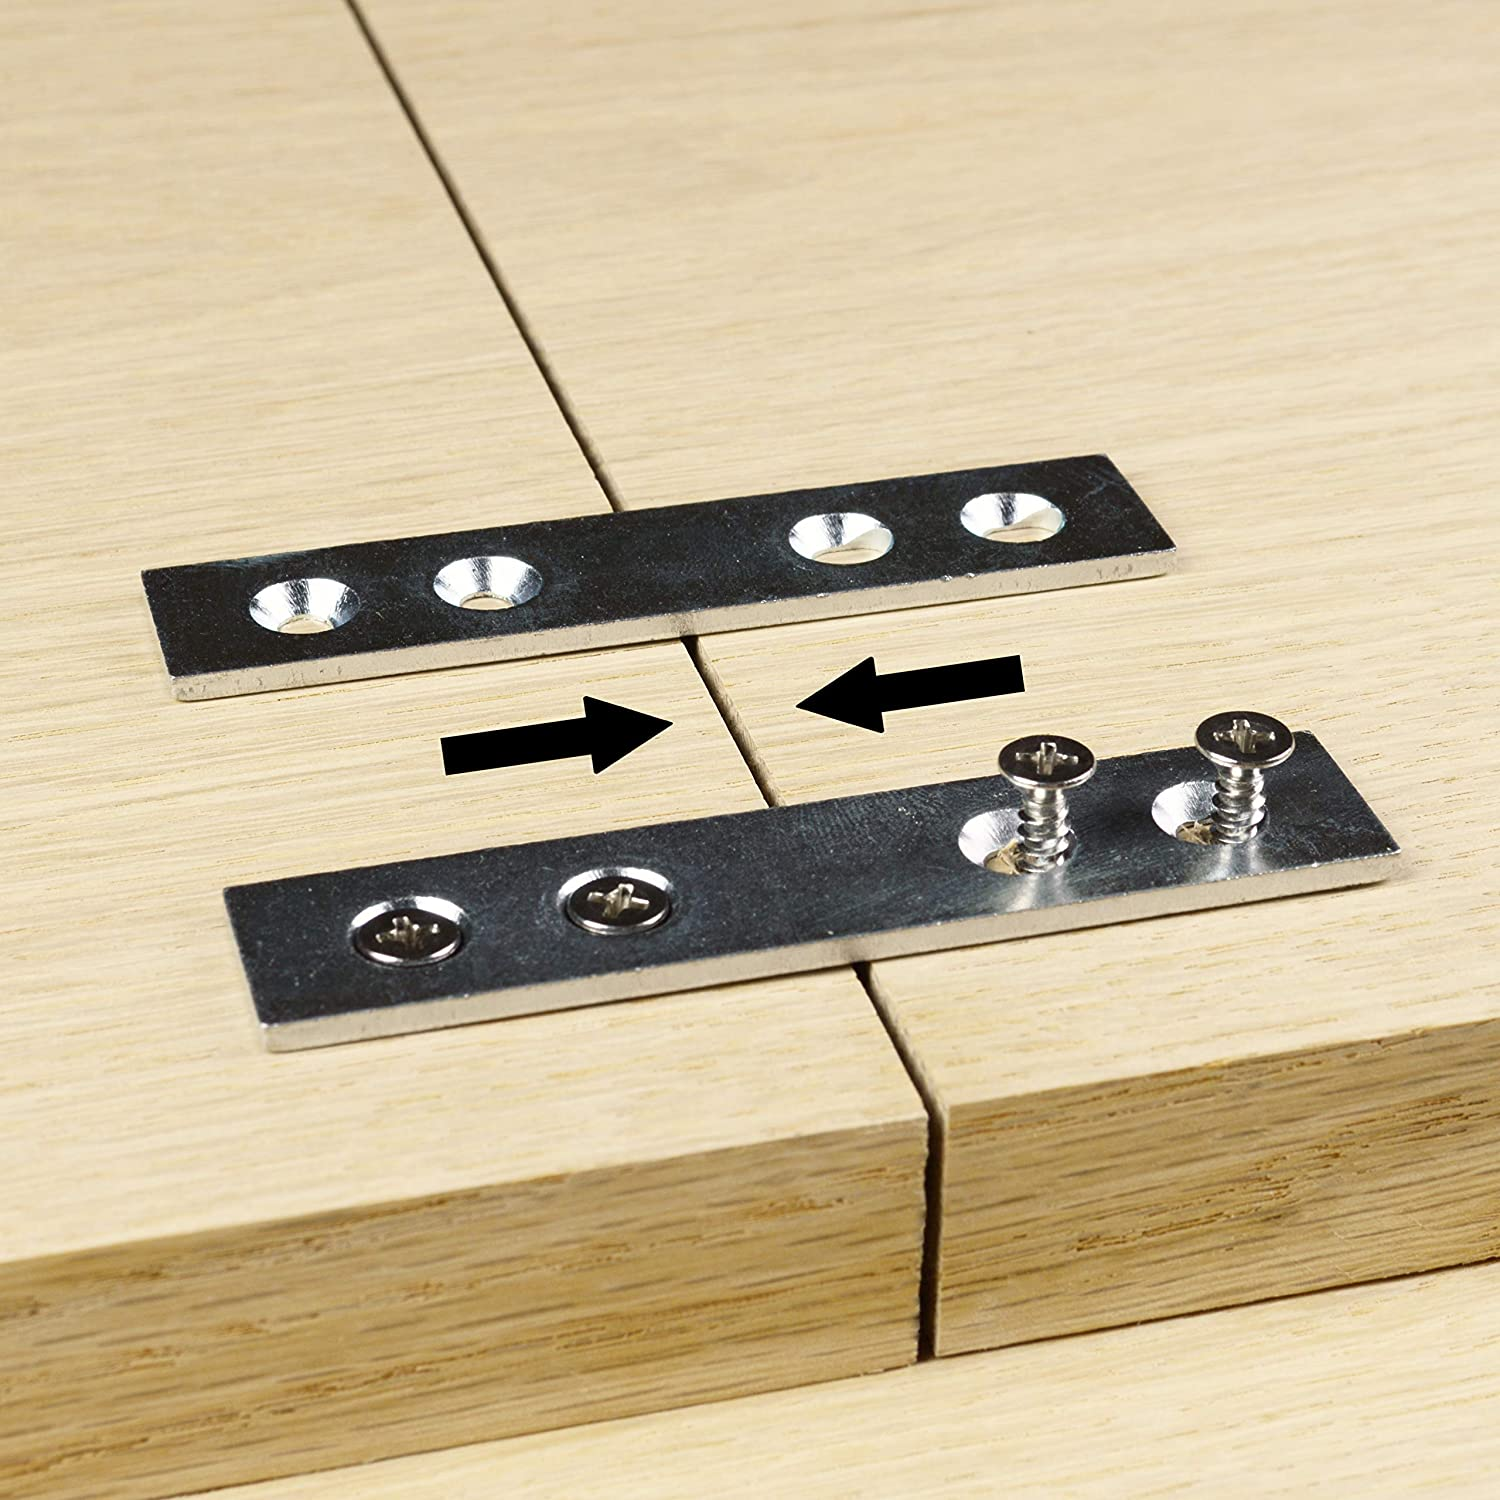 Pack Mesa Mall of 8 Clamping Mending Steel Bracket Straight Plate Max 78% OFF Brac